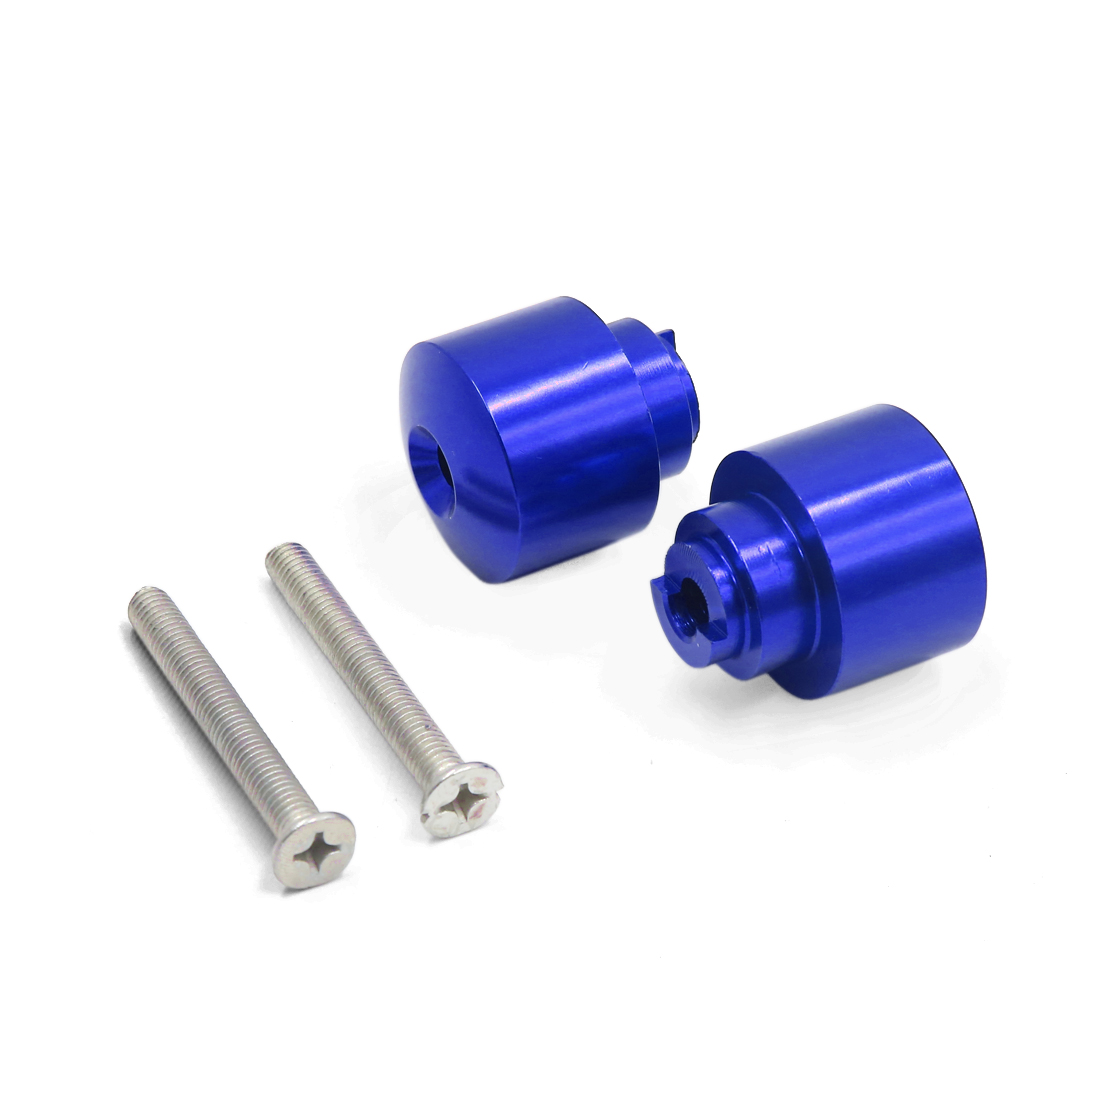 2Pcs Universal Blue Aluminum Alloy 21mm Handlebar End Cap for Motorcycle